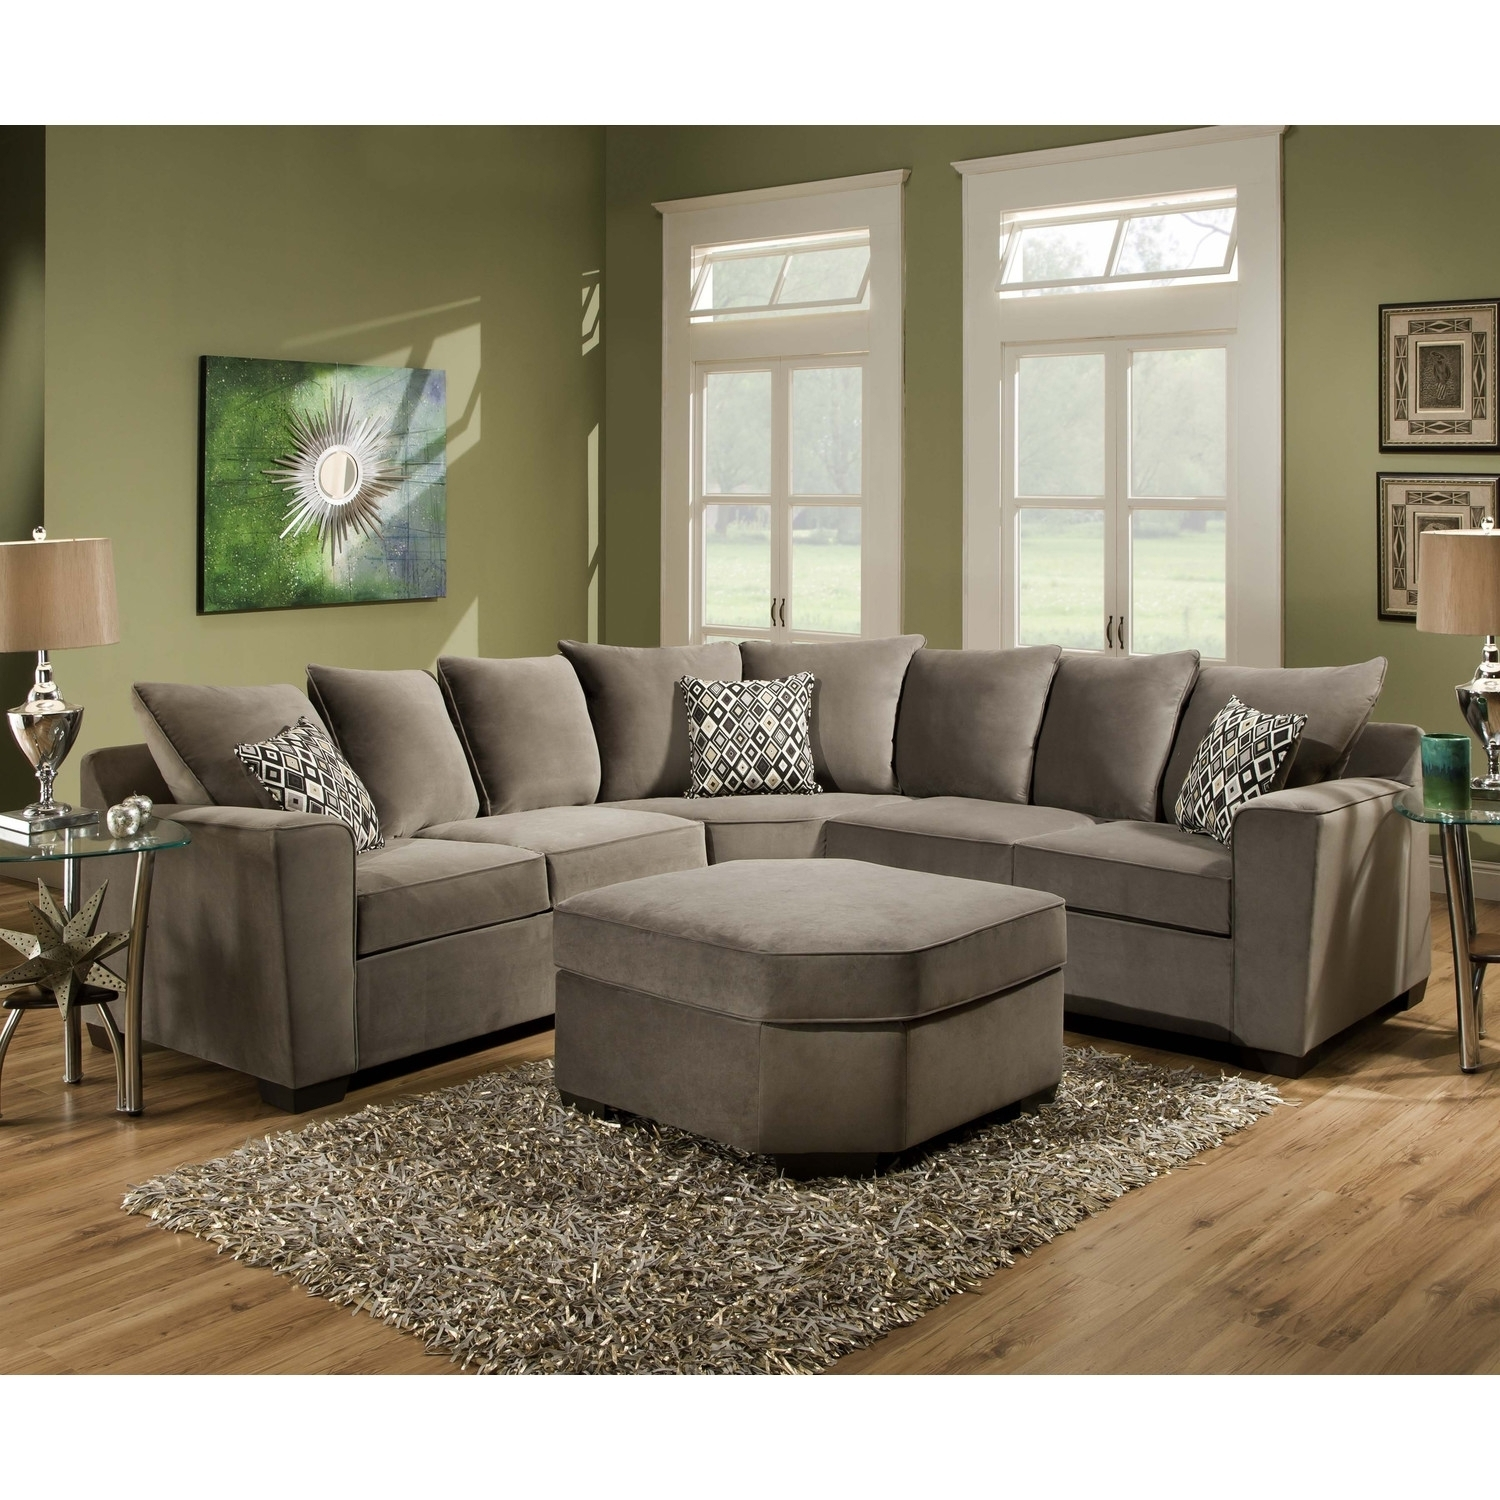 Ultra Plush Sectional Sofa | Sofa Ideas for Plush Sectional Sofas